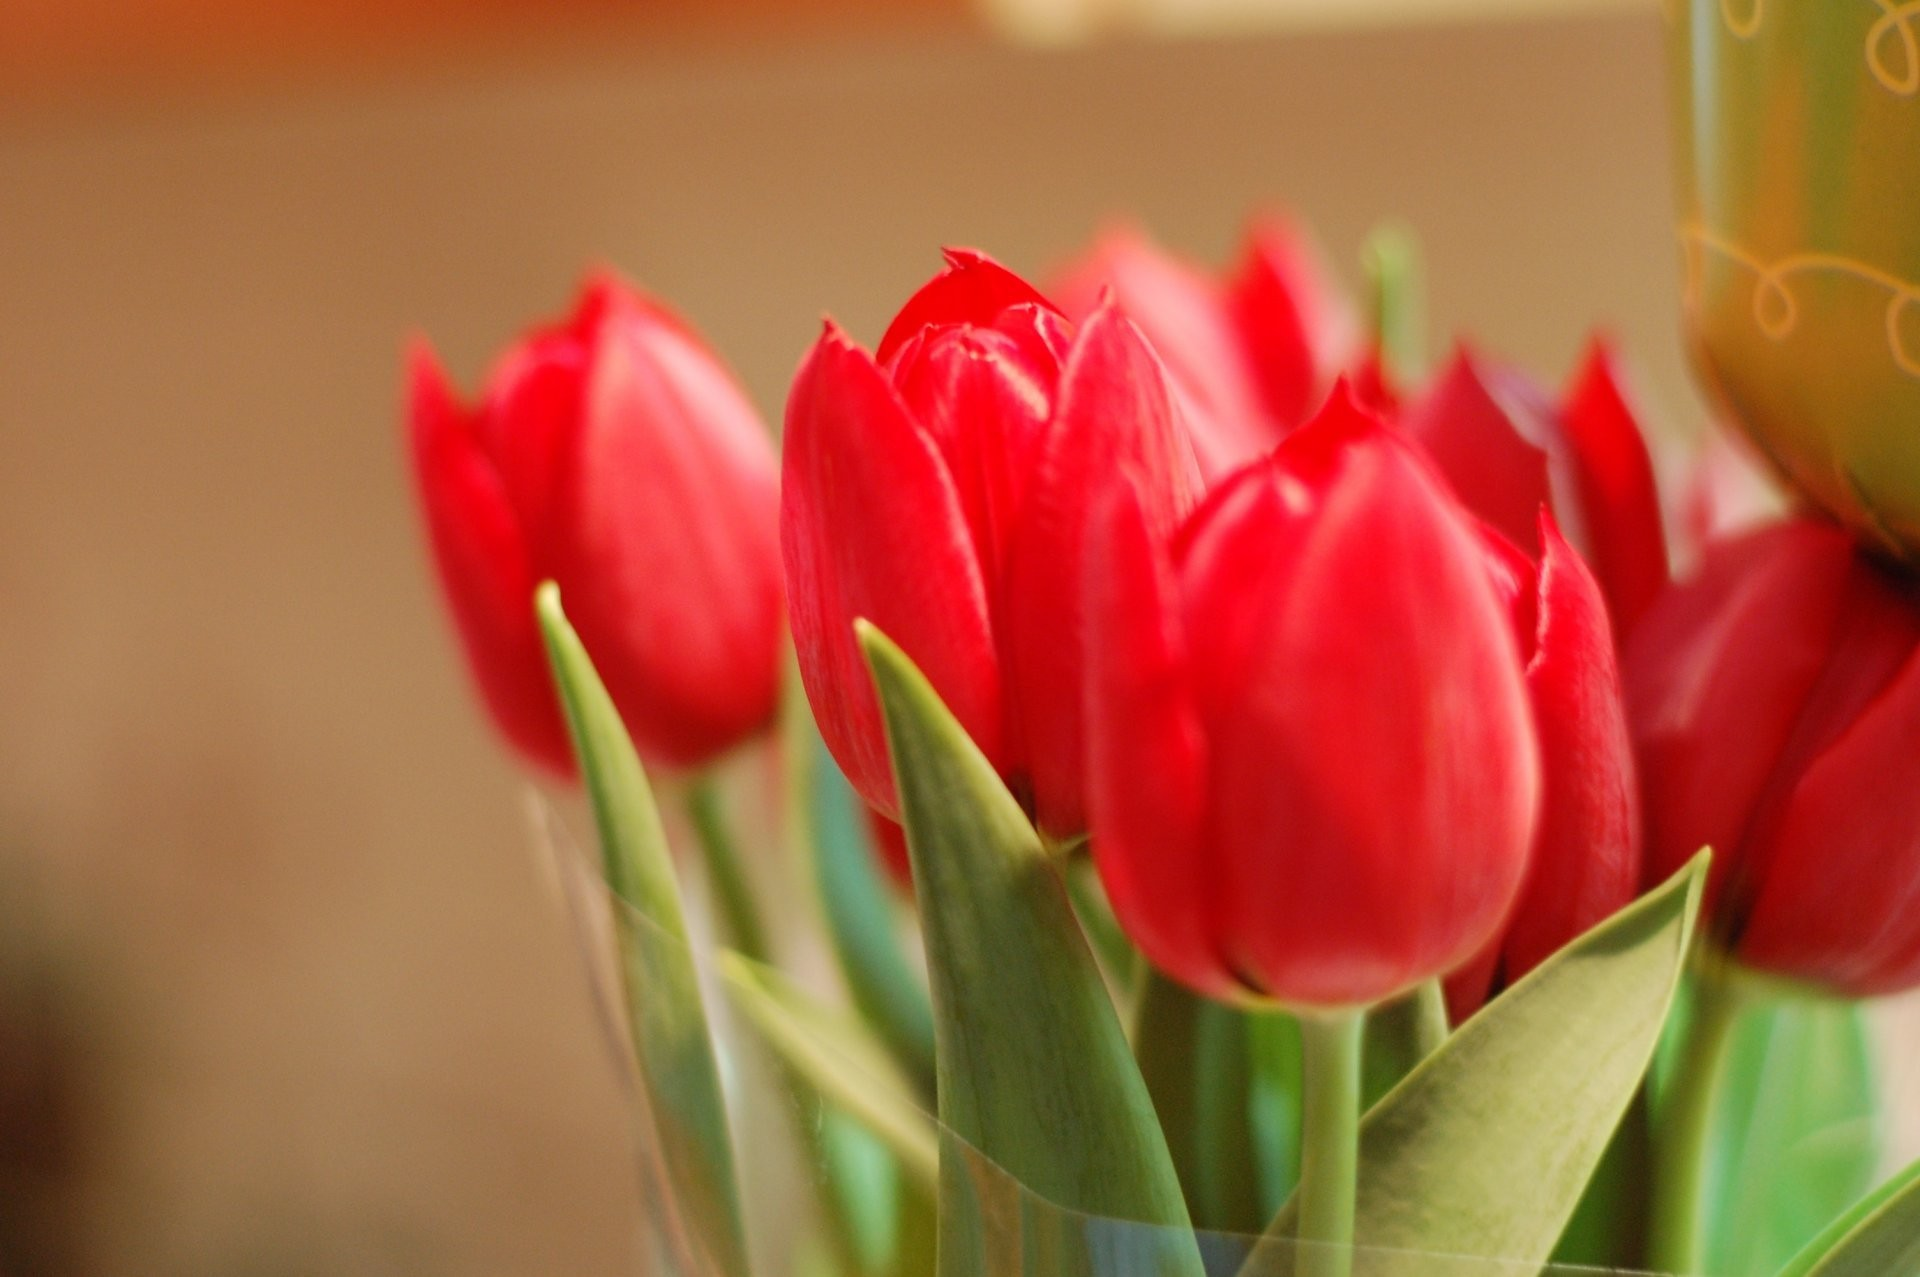 flower flowers tulips red petals bud buds close up leaves leaves background  wallpaper widescreen full screen